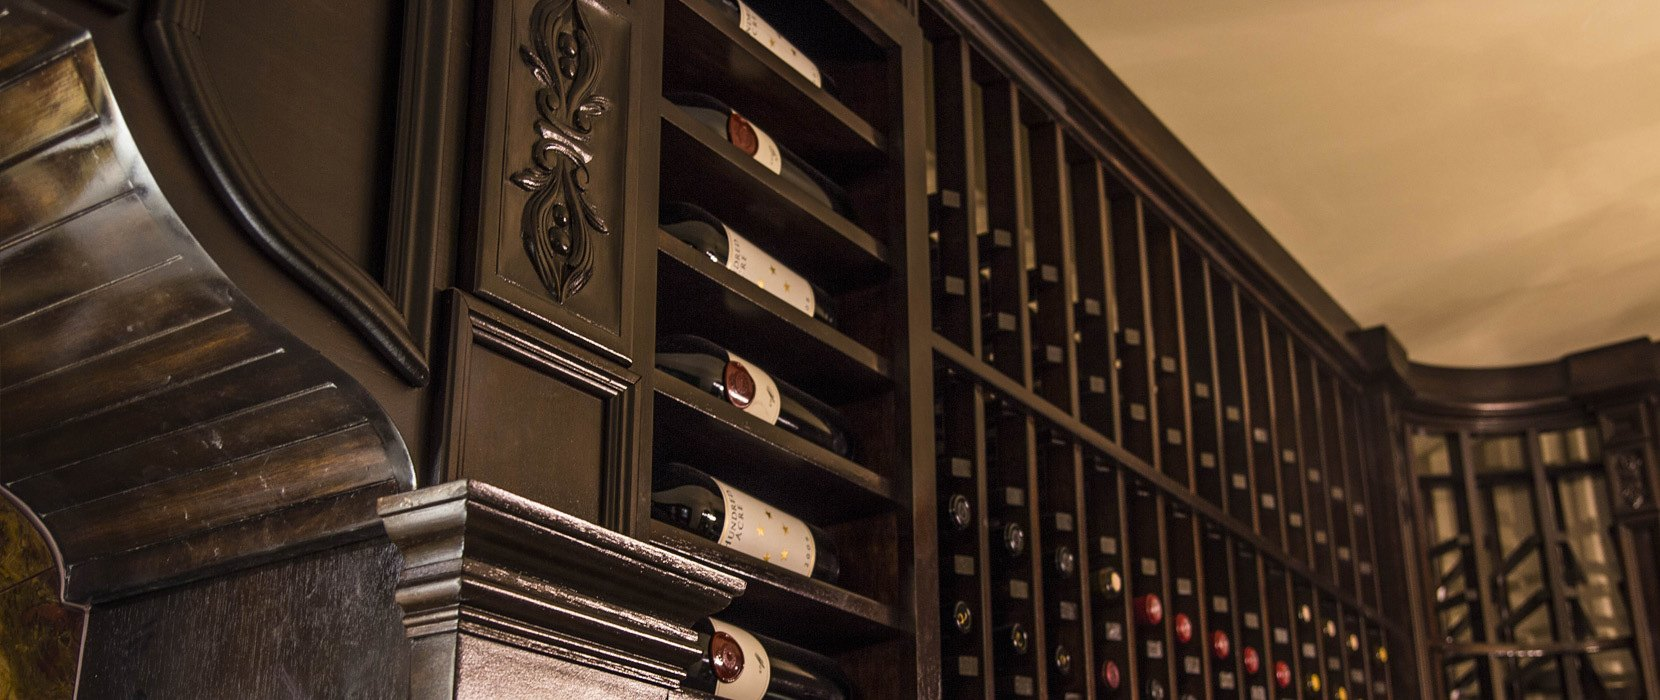 Custom Wine Cellars by WineCellars.com